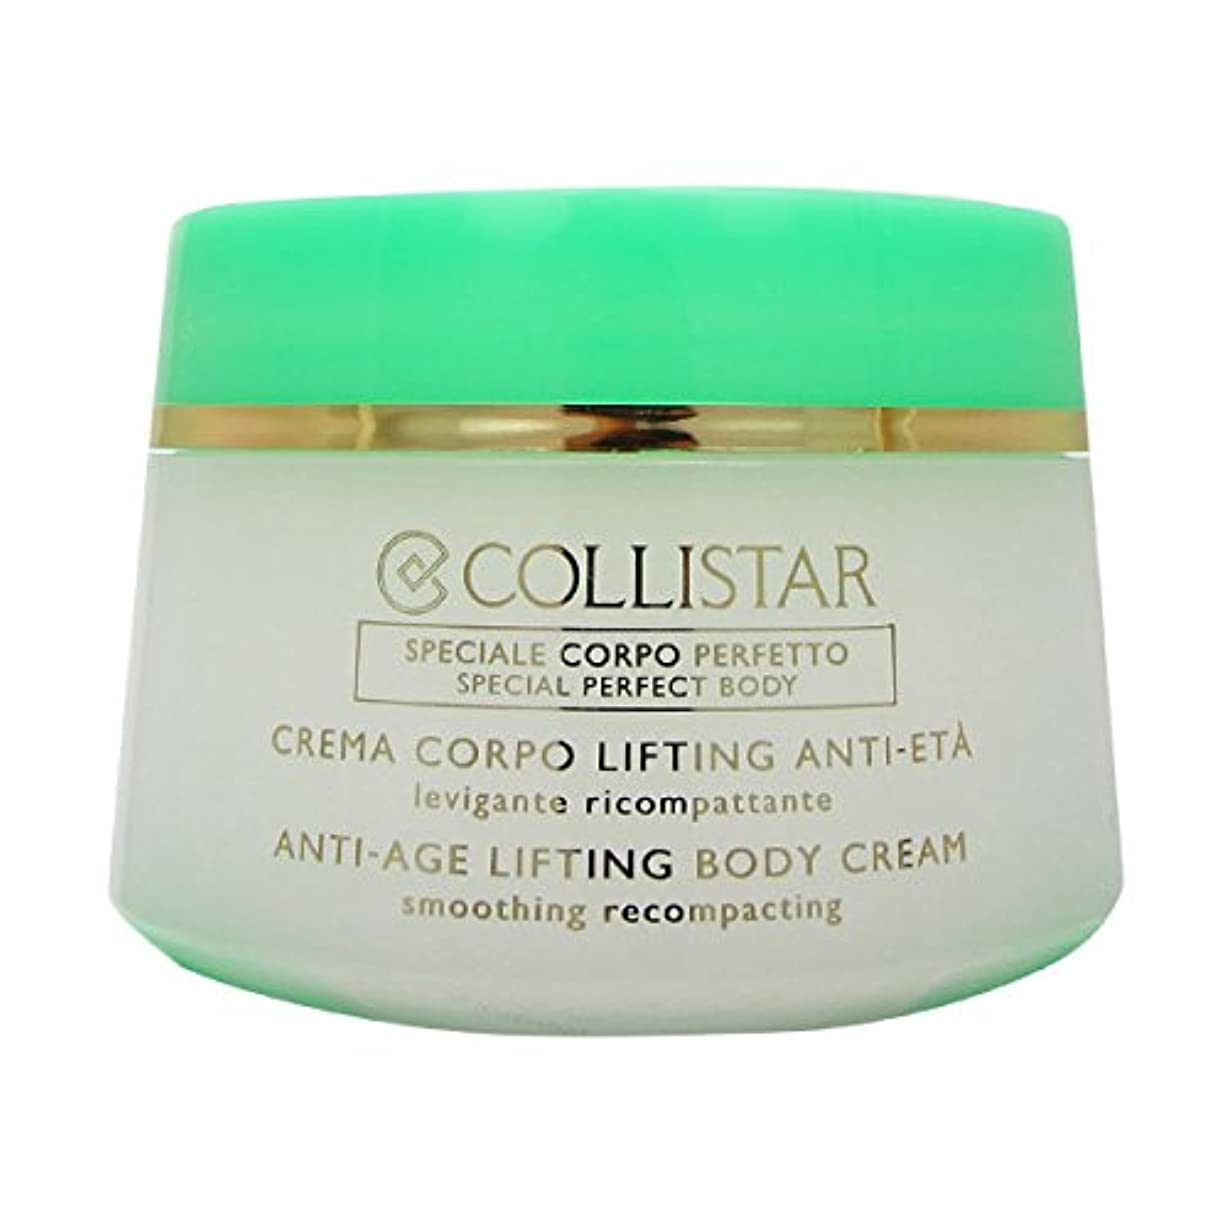 振り向く中性鉛筆Collistar Anti-age Lifting Body Cream 400ml [並行輸入品]